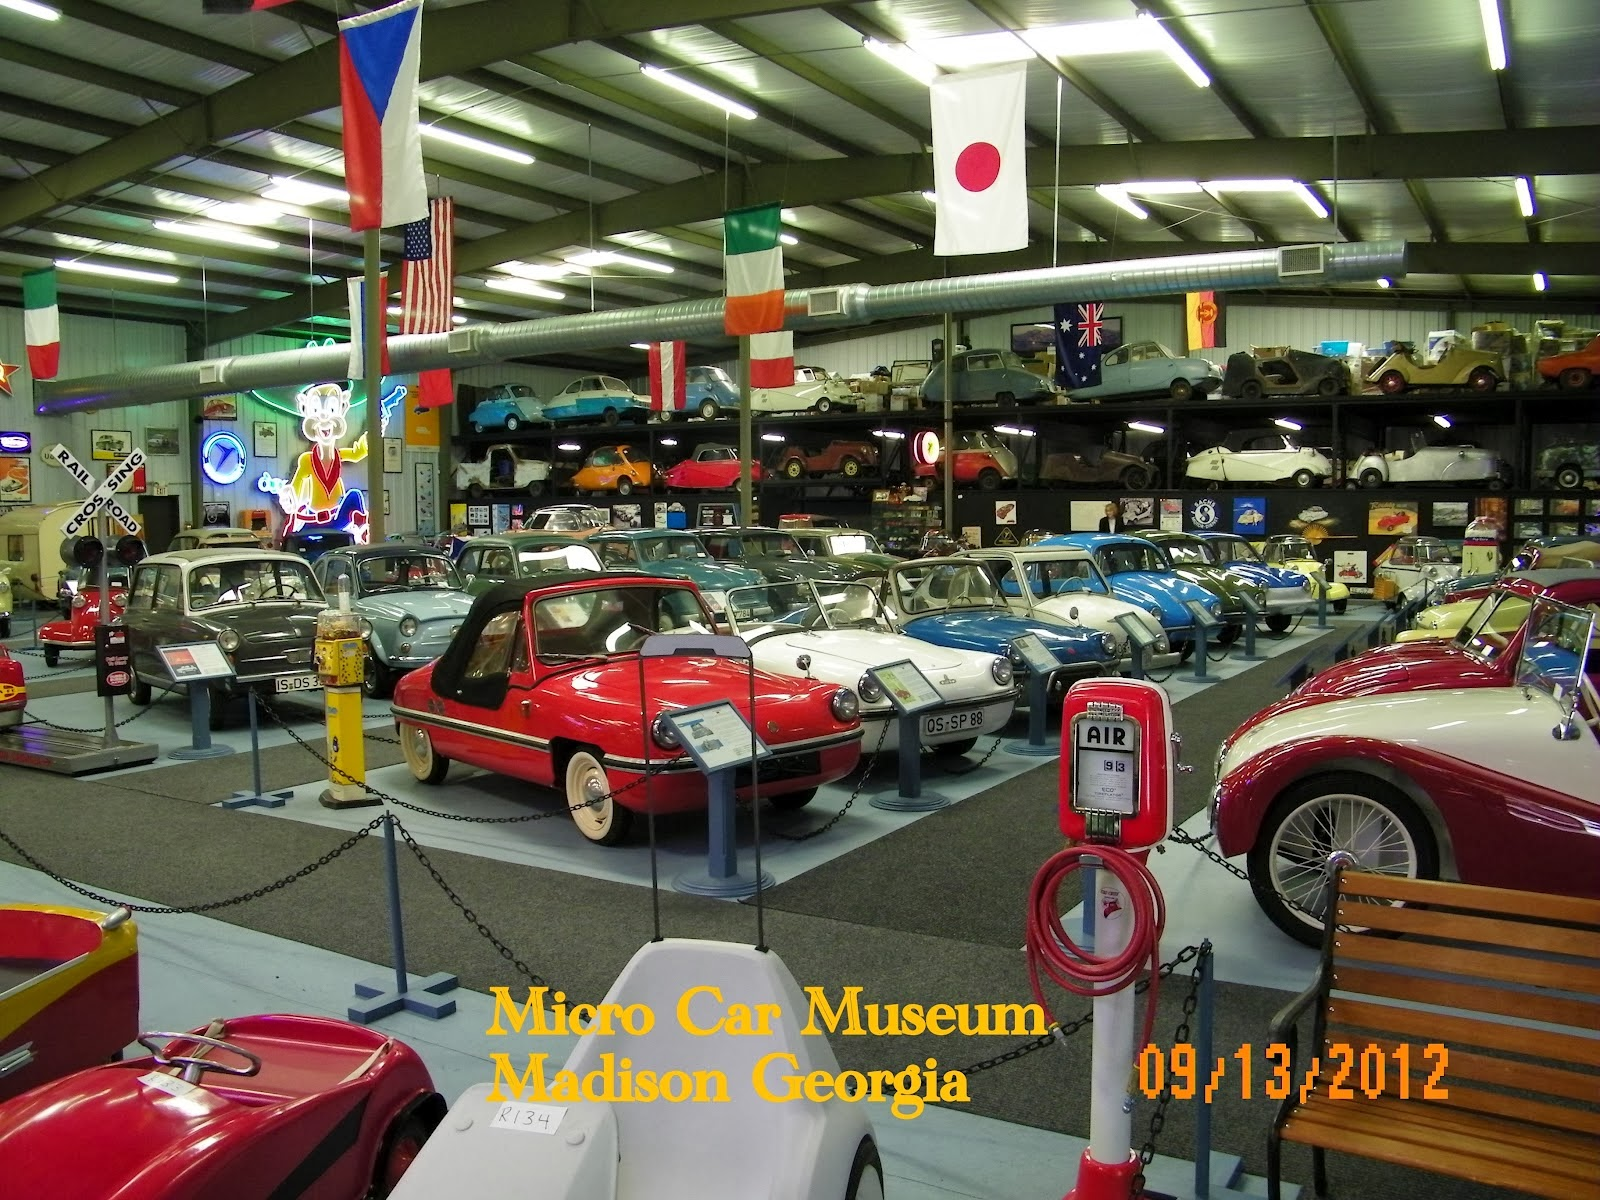 CARHUNTER : LETS VISIT THE CAR MUSEUM - IT\'S GONE,THEY ARE GONE!